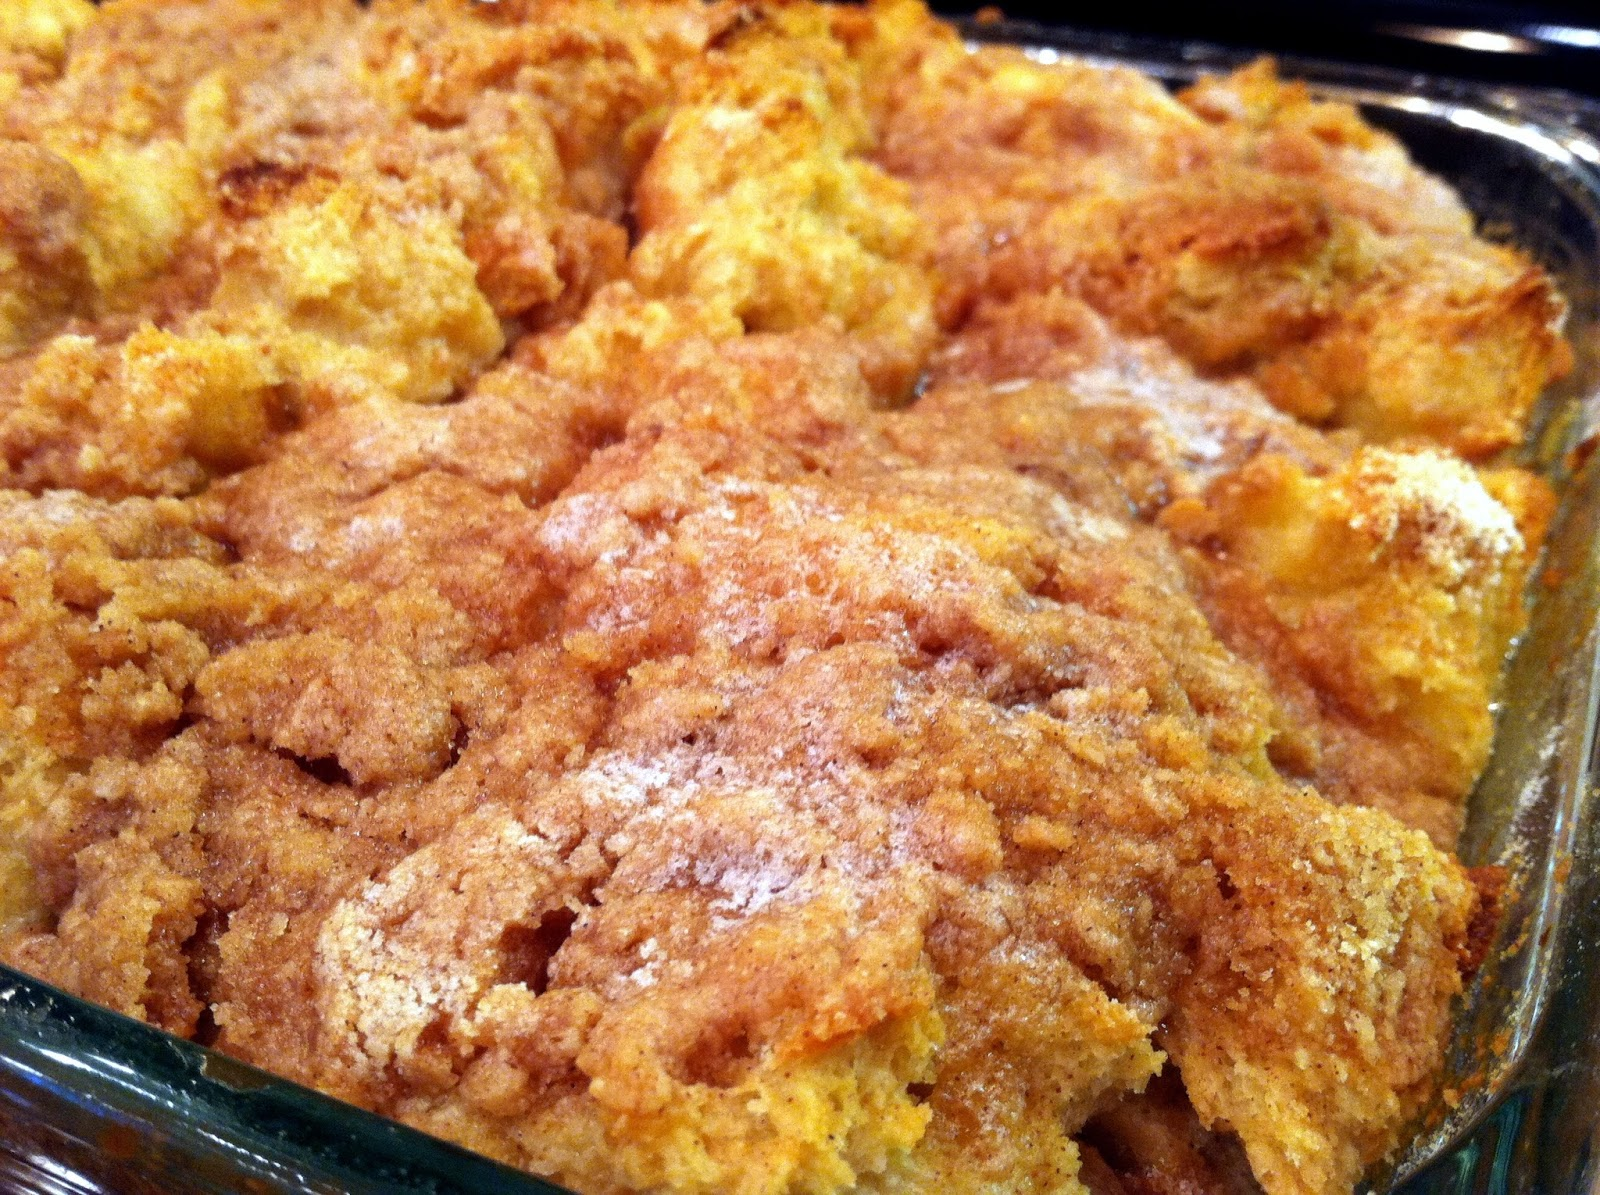 One Couple's Kitchen: Overnight Cinnamon French Toast Casserole